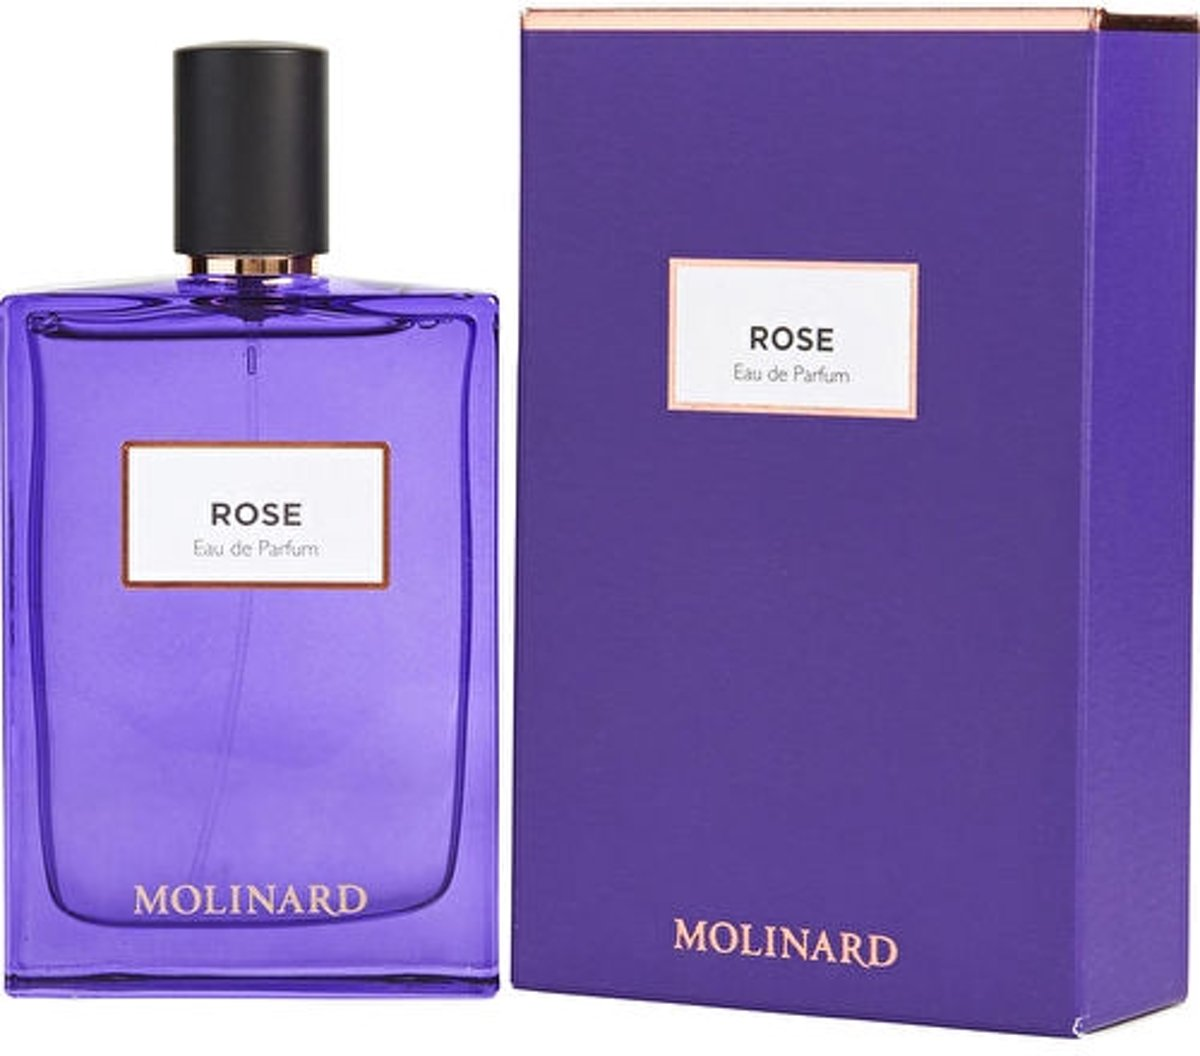 Molinard Rose edp 75ml